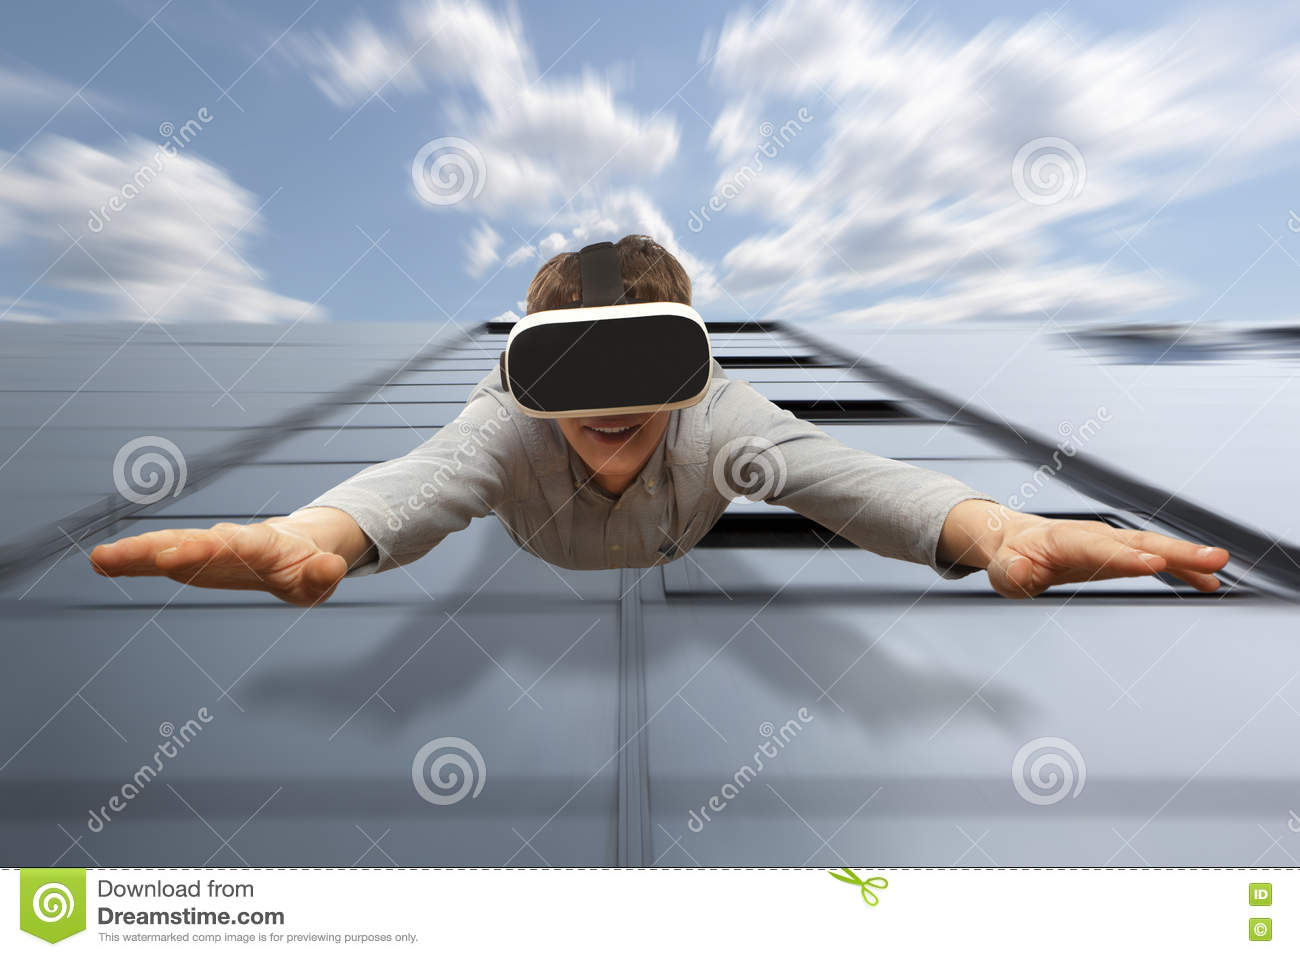 Man wearing virtual reality glasses flying from a skyscraper